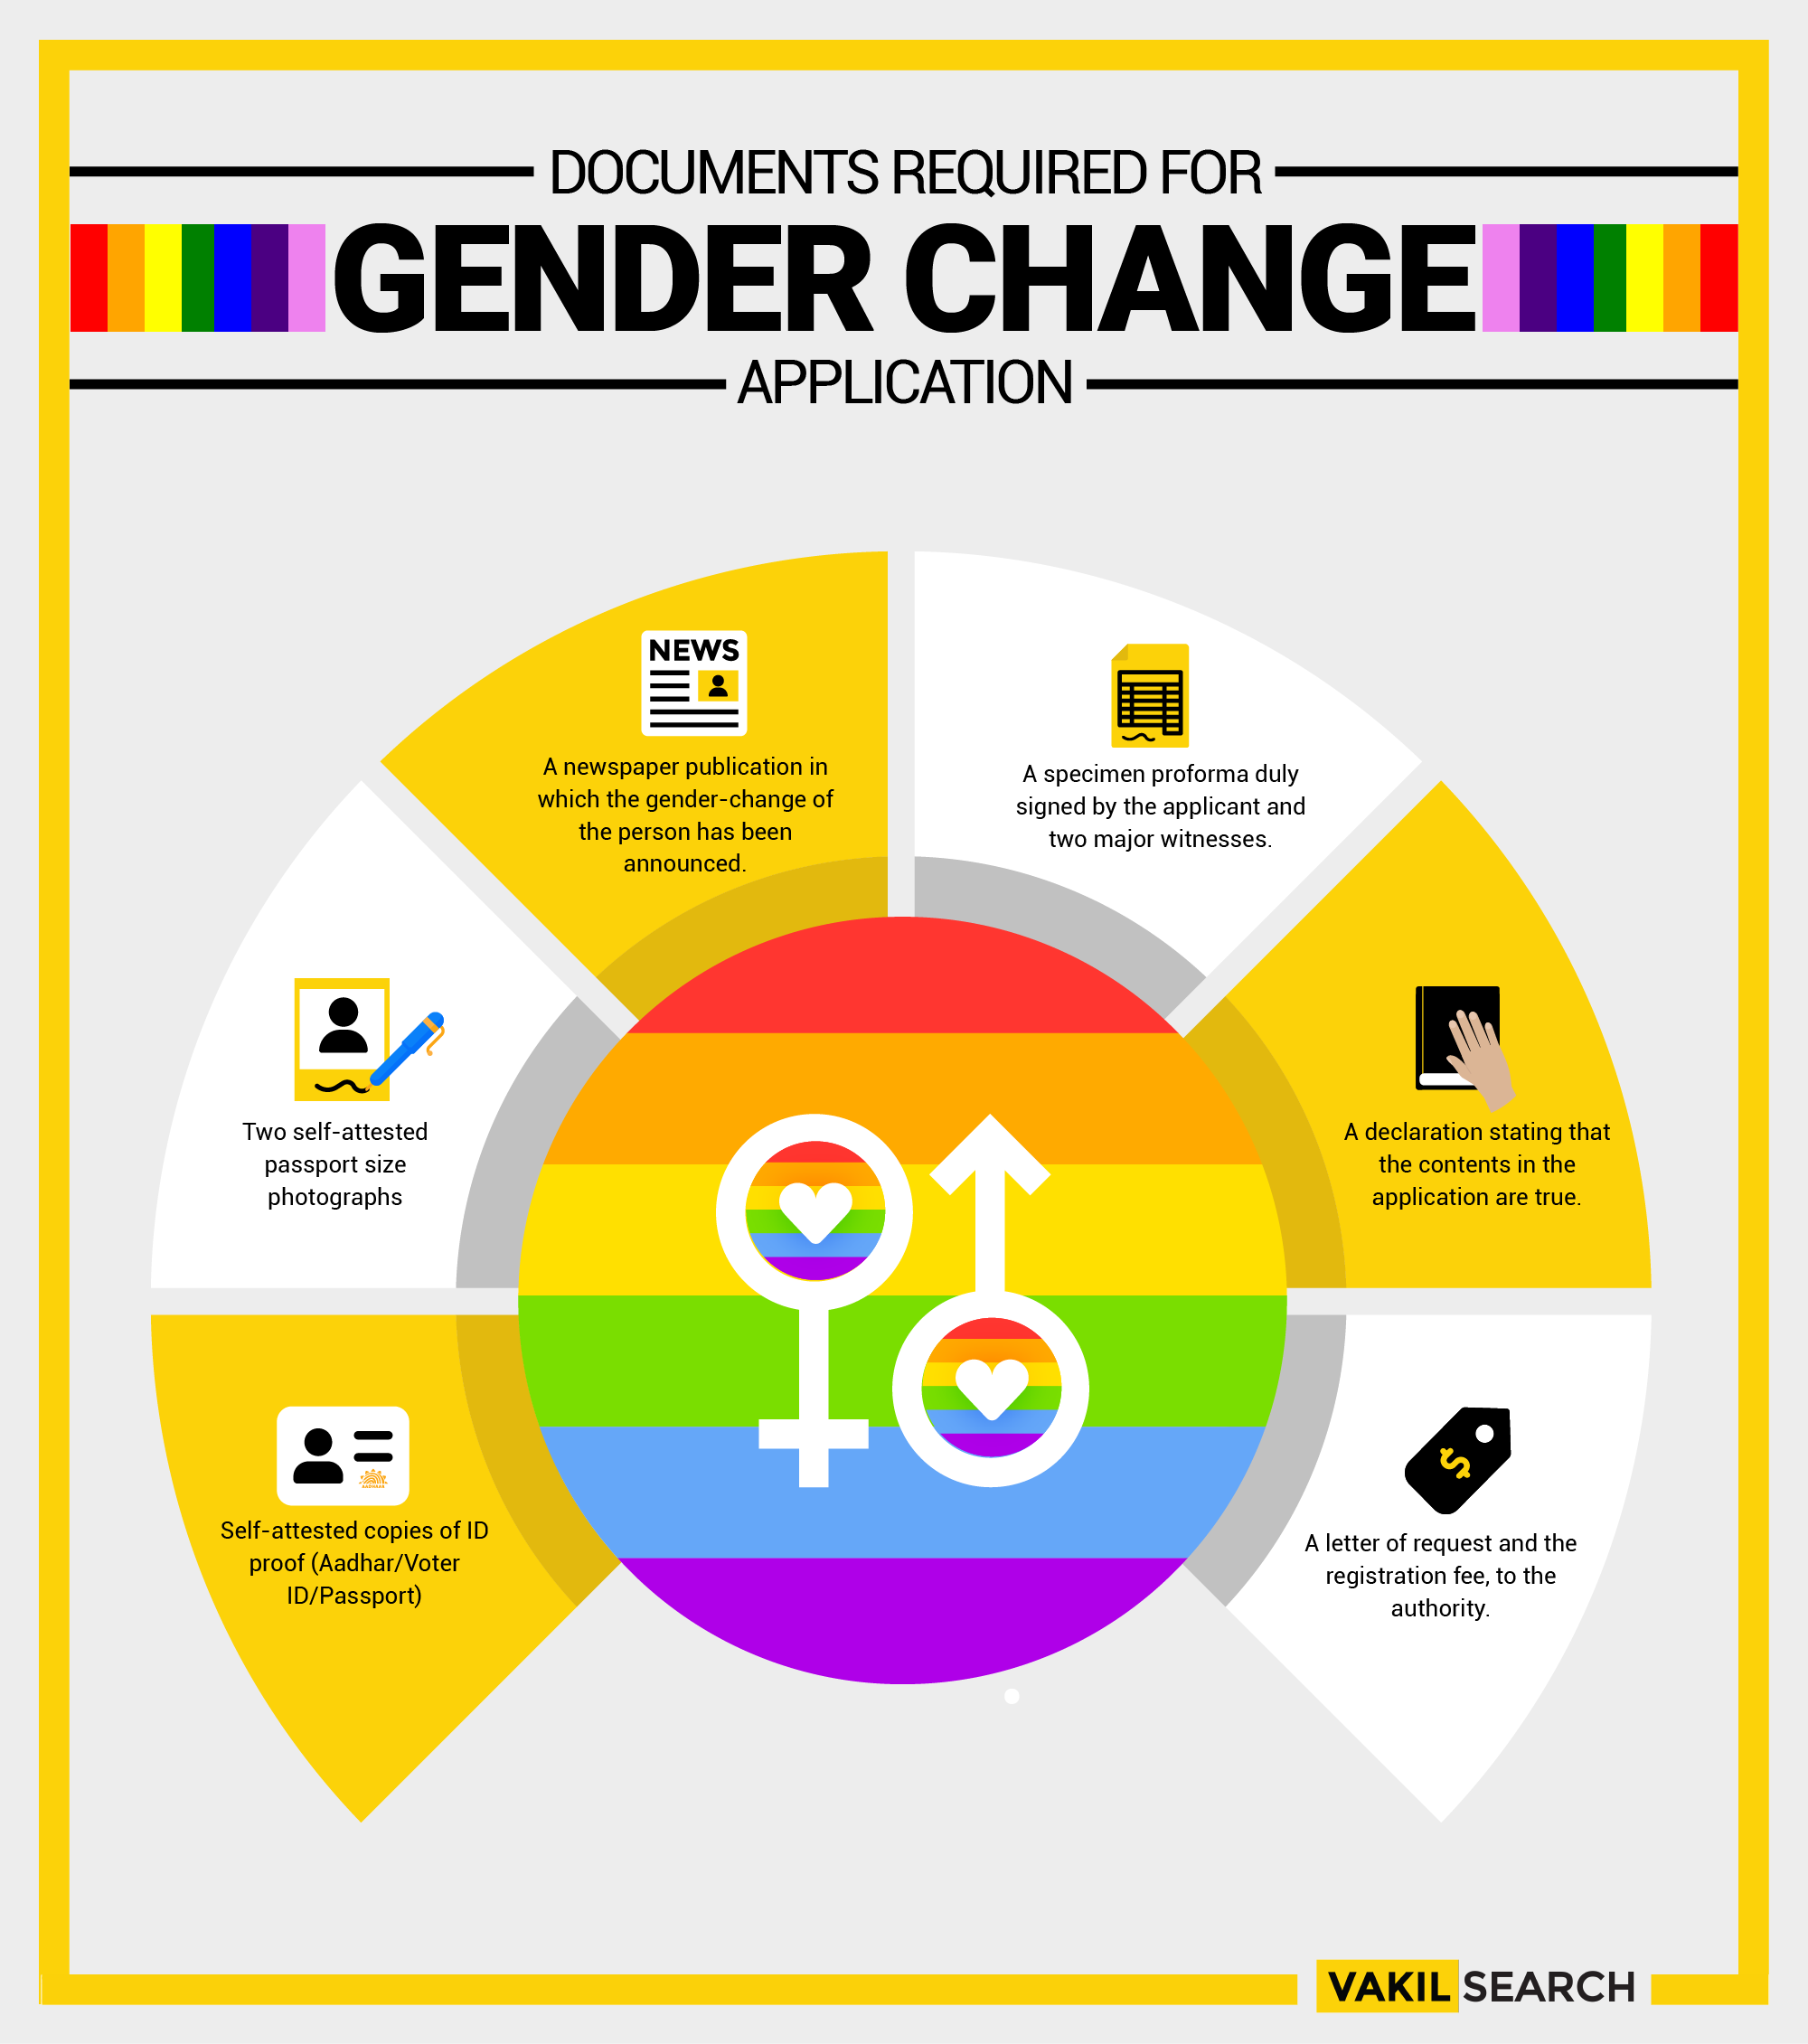 Documents required for gender change application